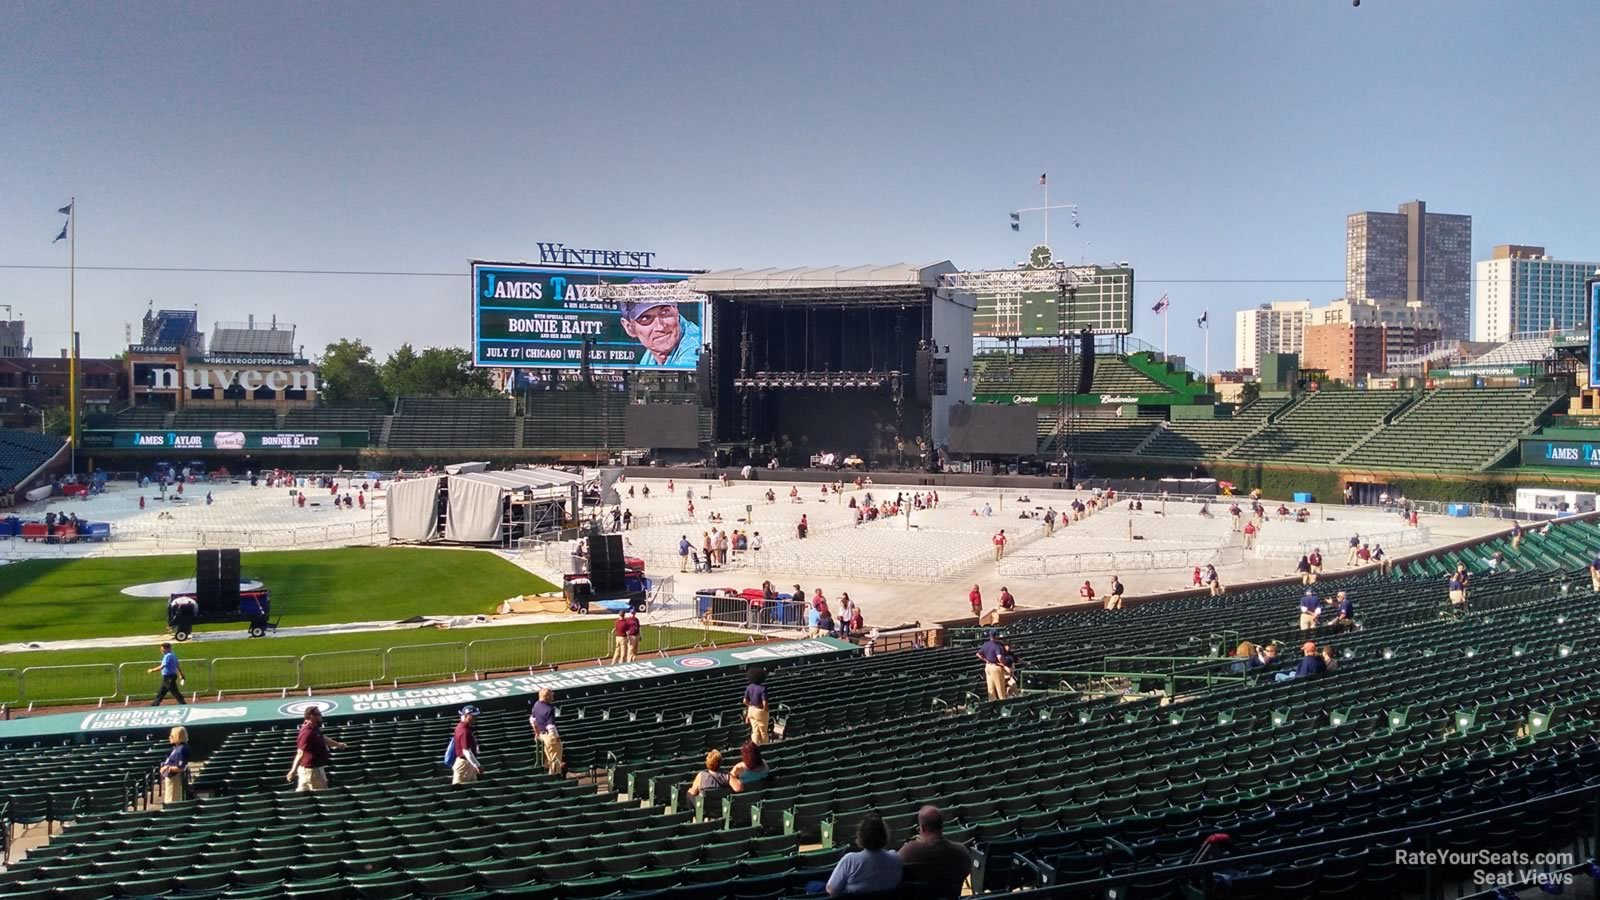 Wrigley Field Section 228 Concert Seating - RateYourSeats.com